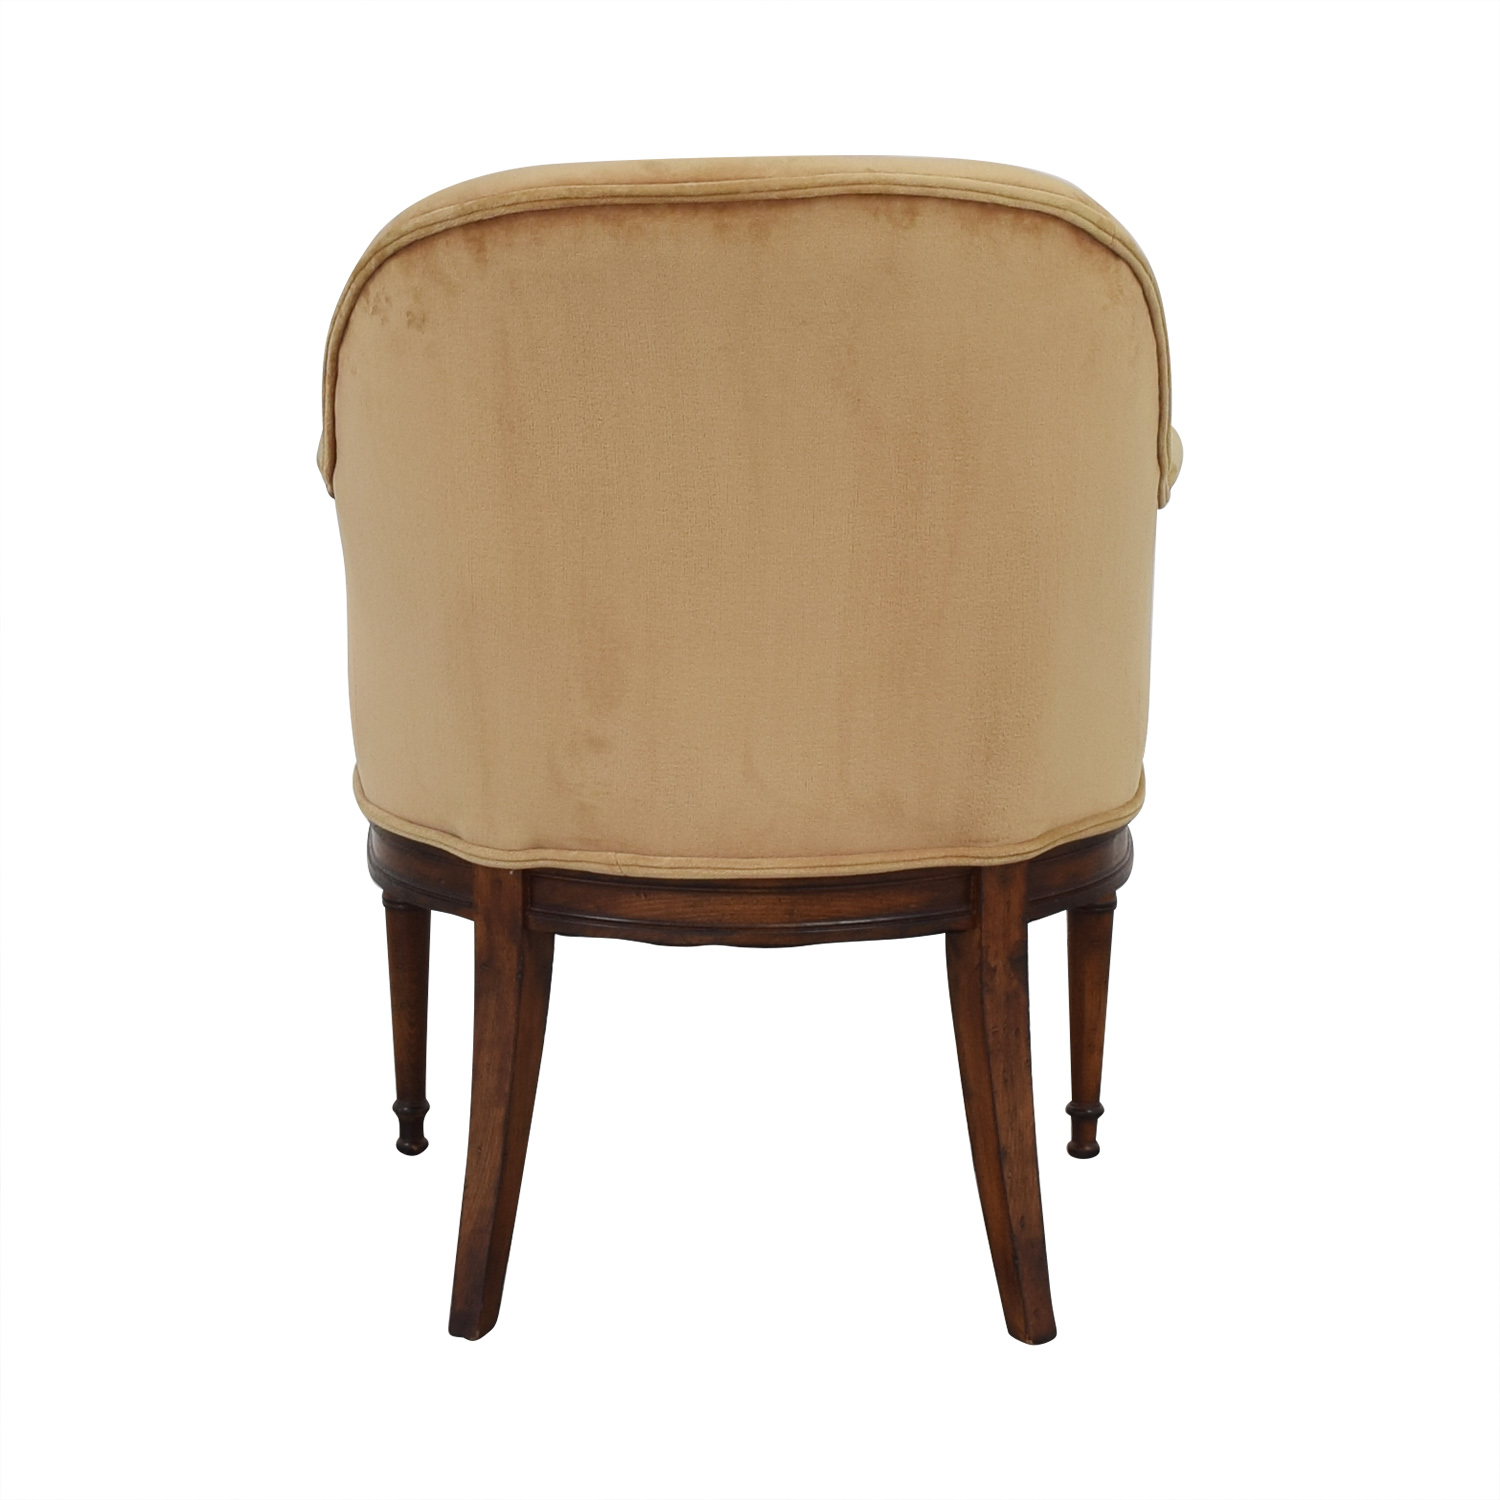 Meyer Gunther Martini Meyer Gunther Martini Upholstered Arm Chair Accent Chairs